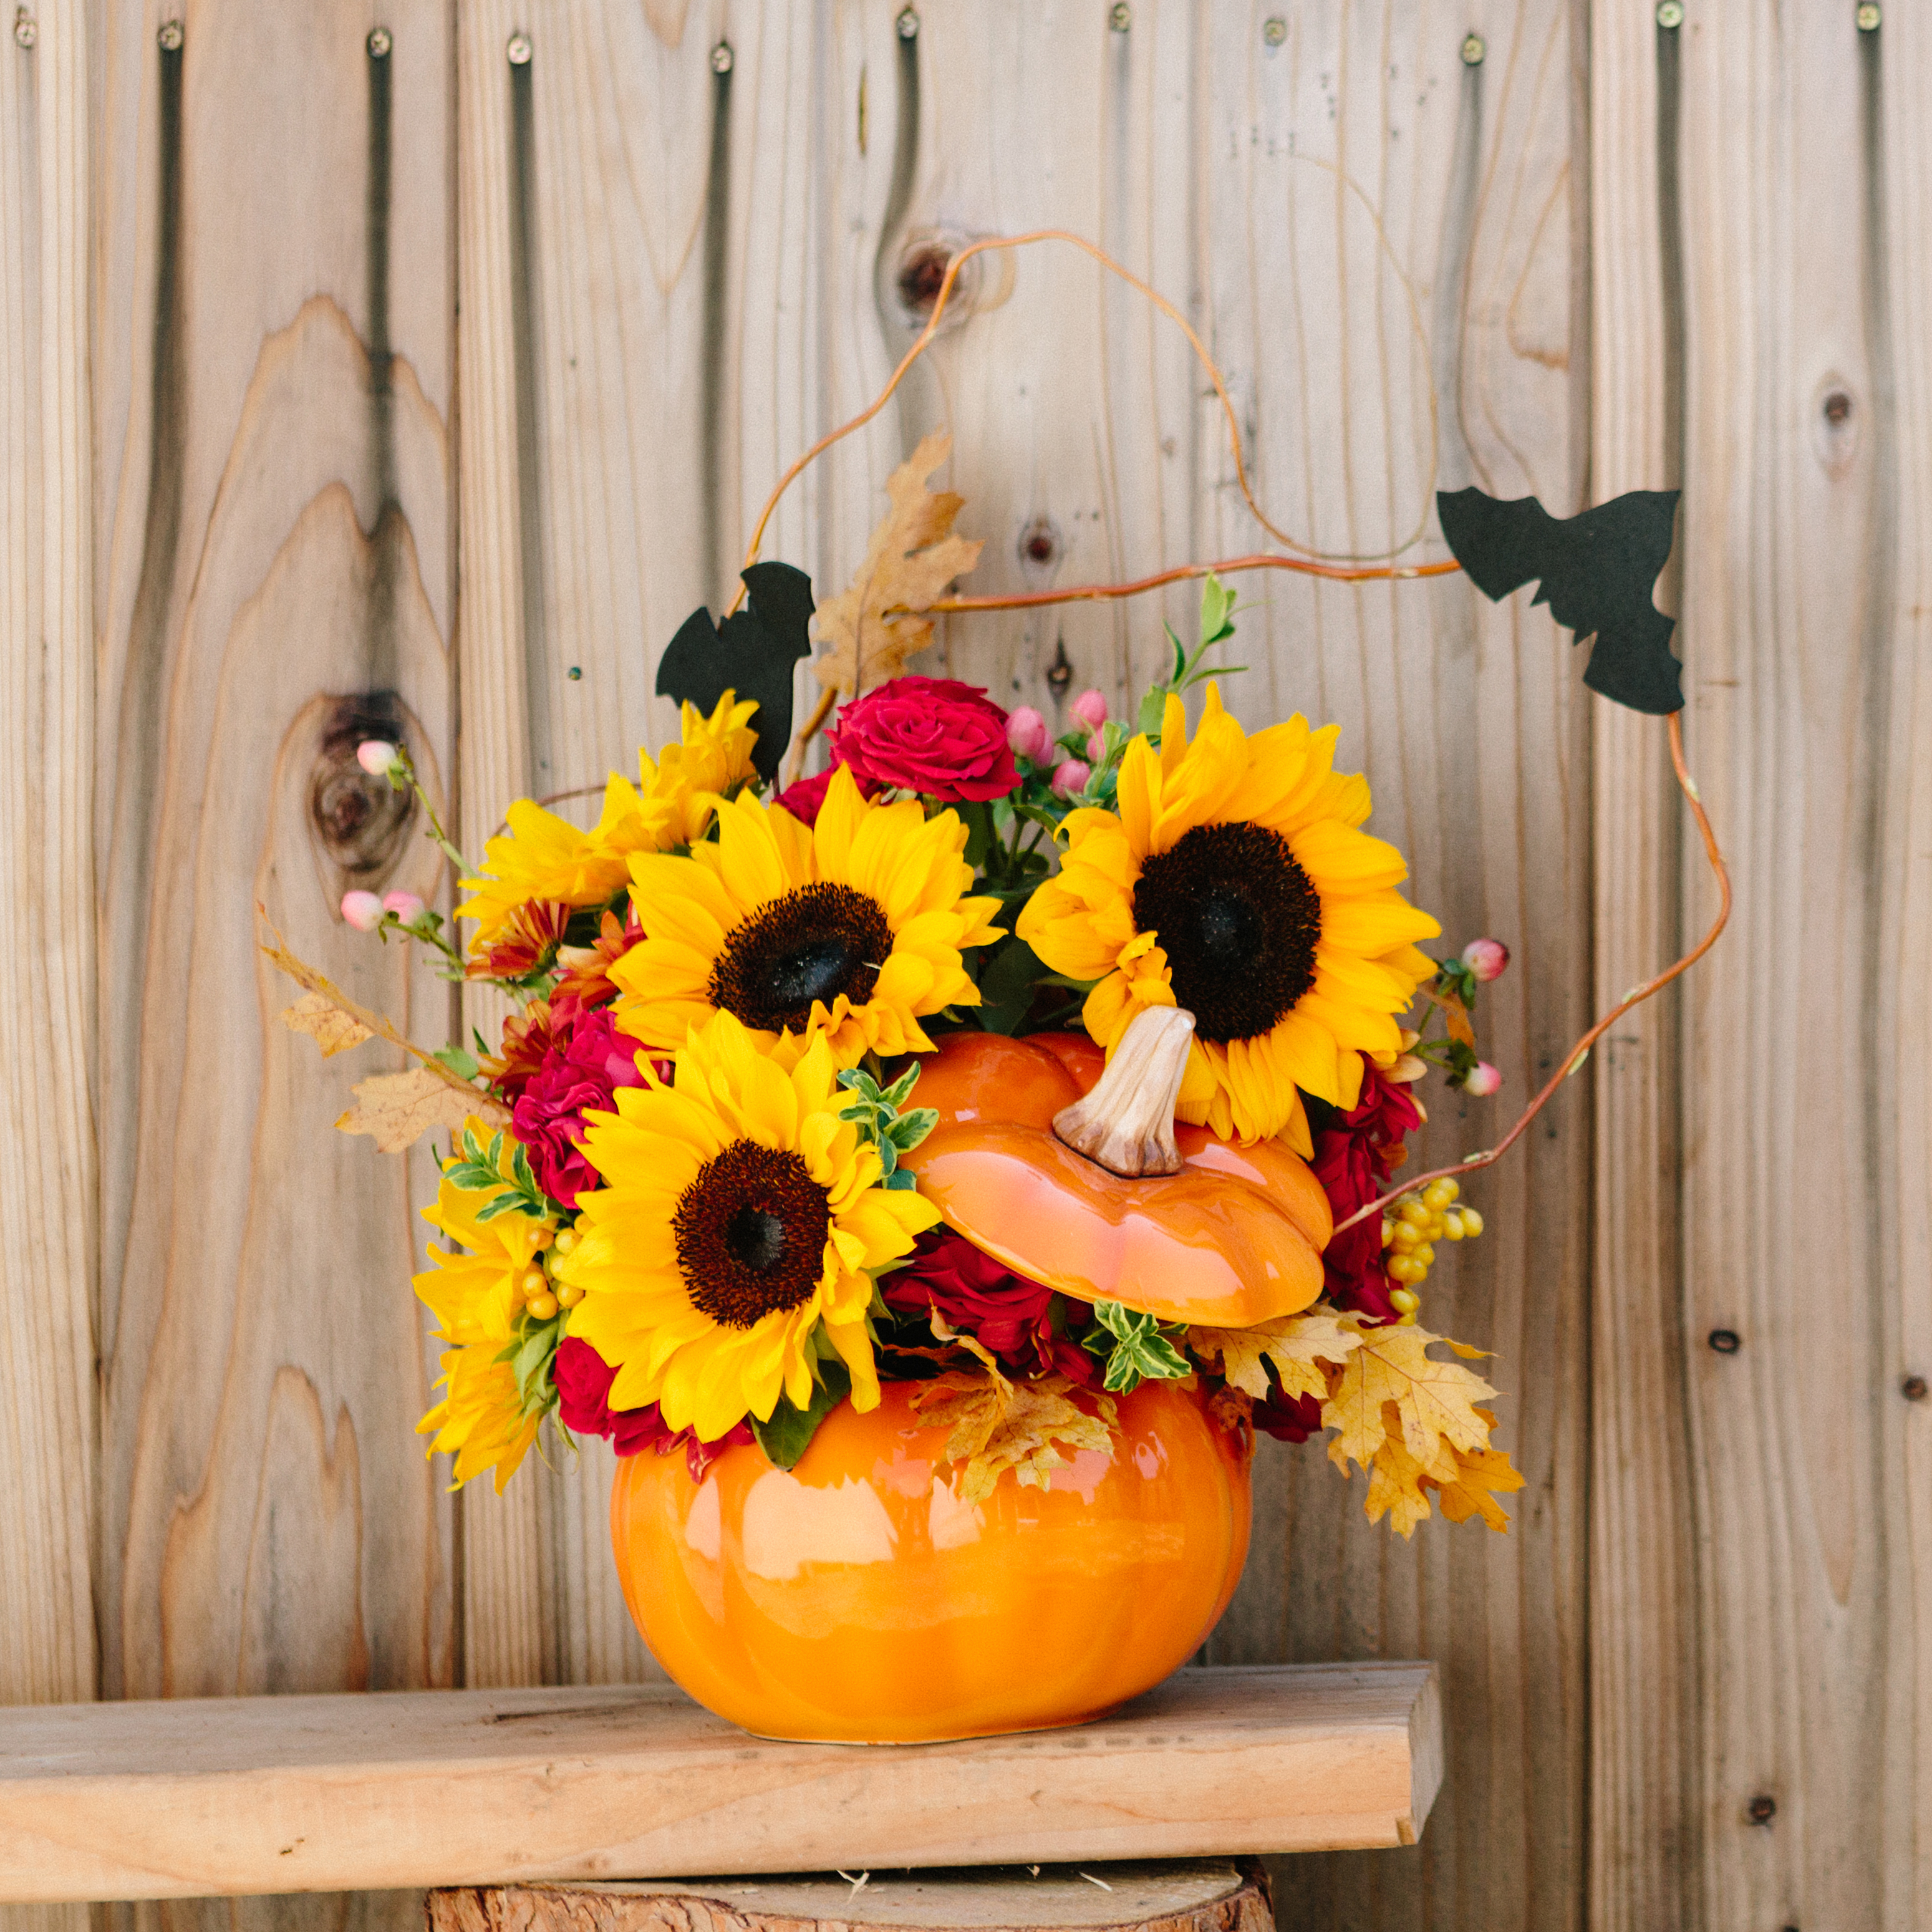 Teleflora Trick or Treat Bouquet. Sunflowers, roses, and mum in a glass pumpkin with bats.